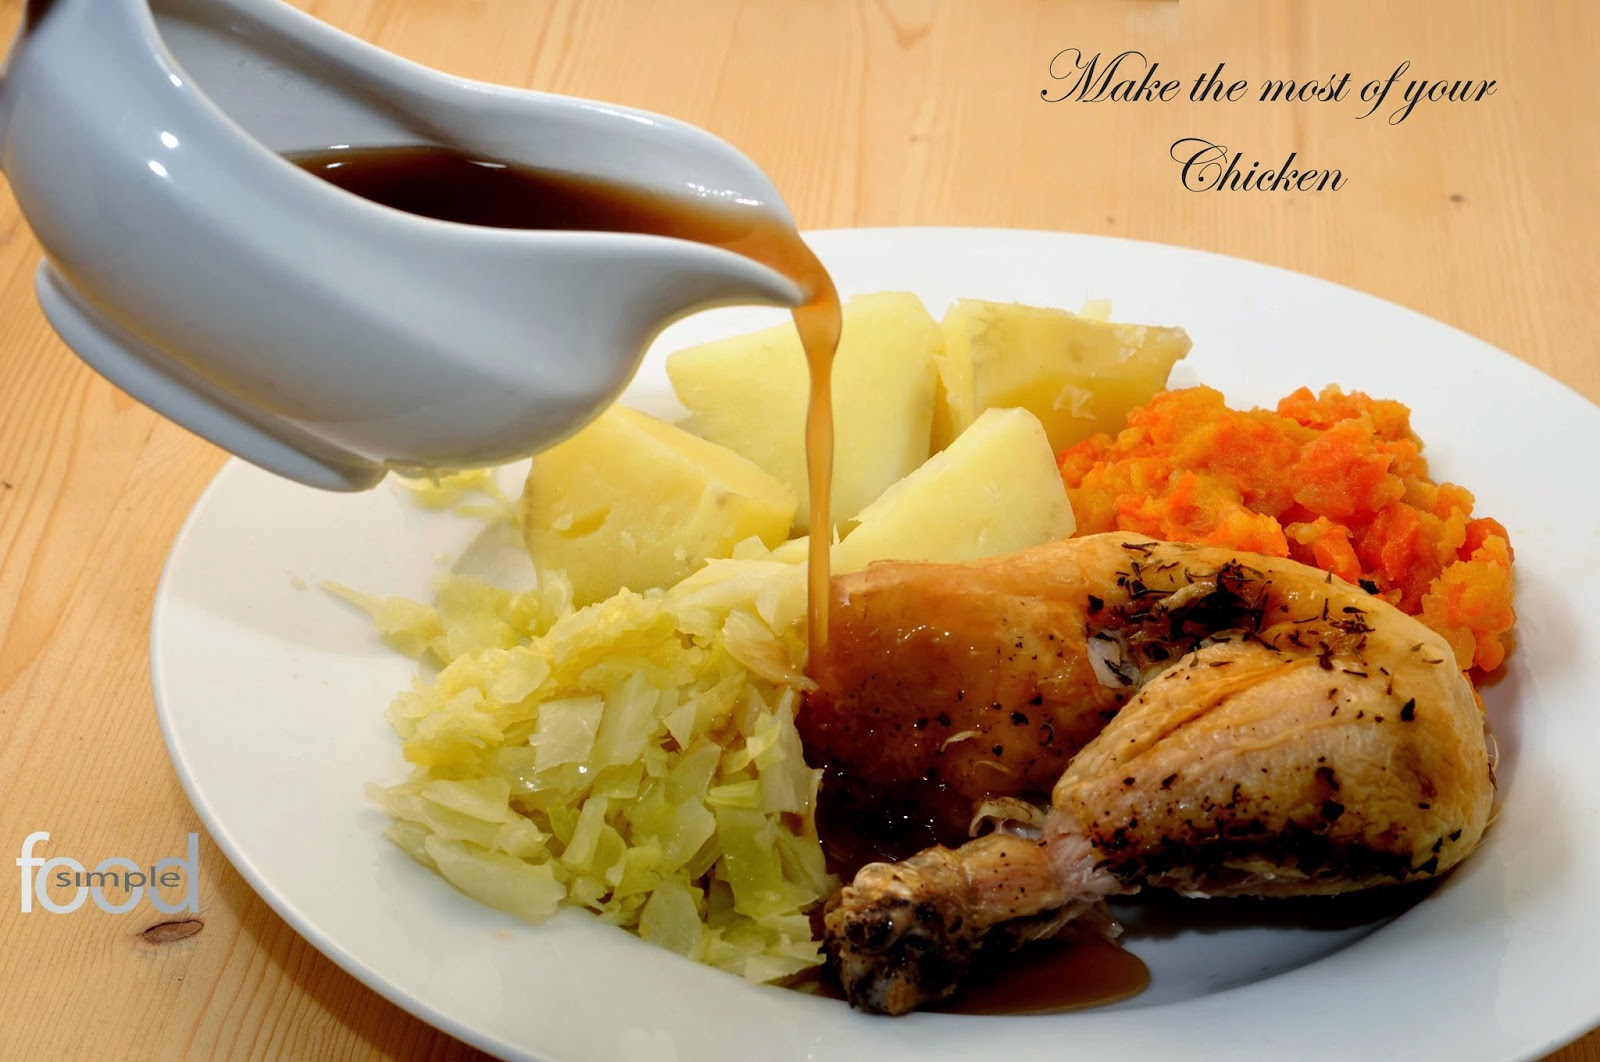 Make the most of your Chicken ~ Simple Food